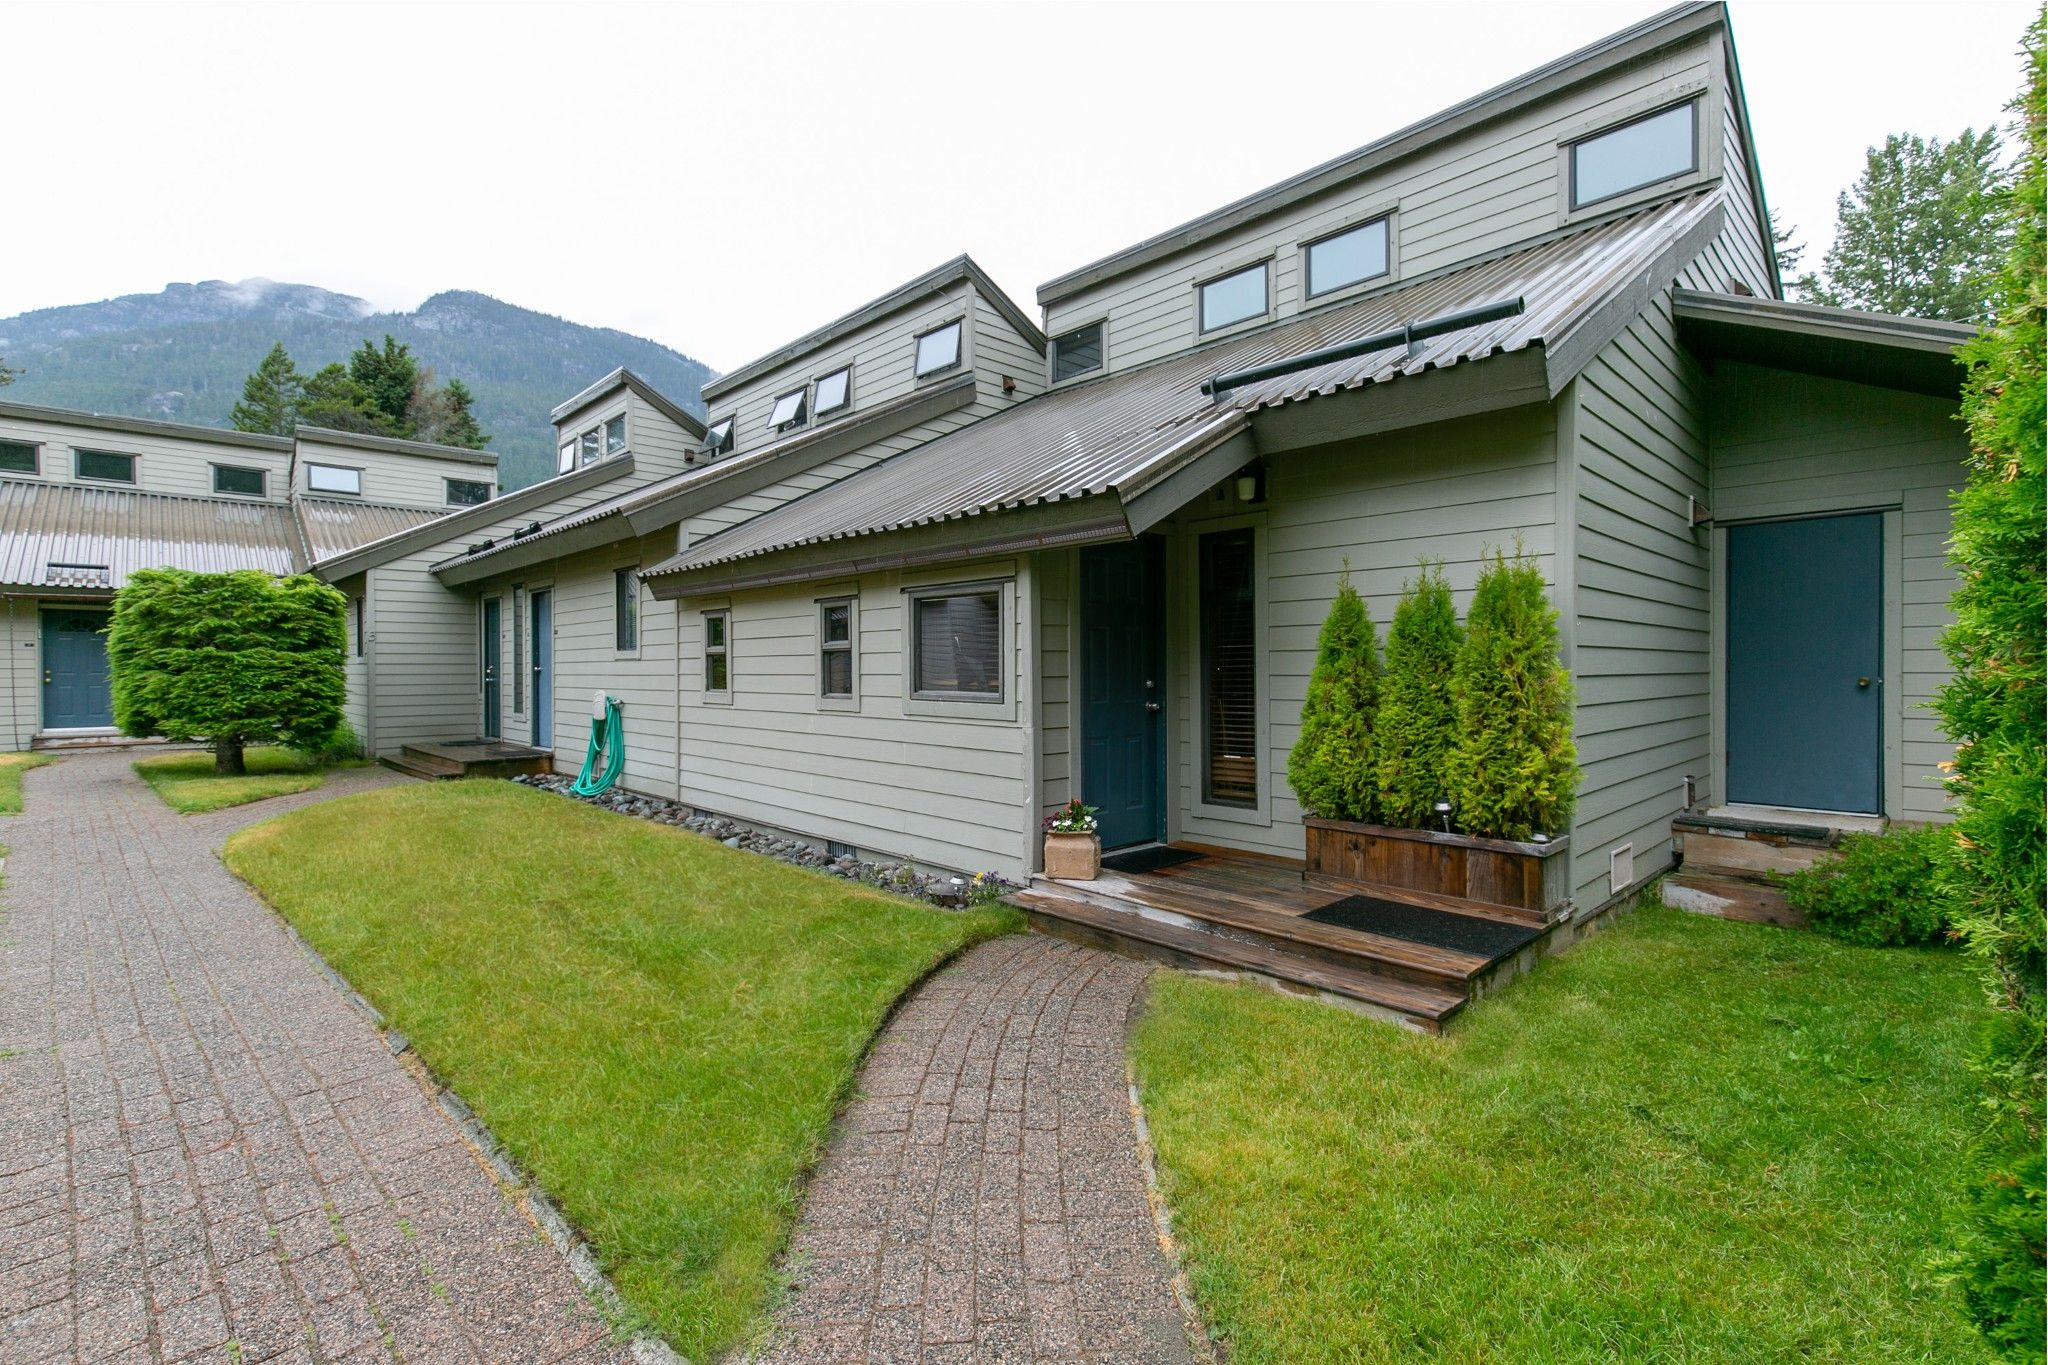 Photo 8: Photos: C1 6900 Crabapple Drive in Whistler: Townhouse for sale